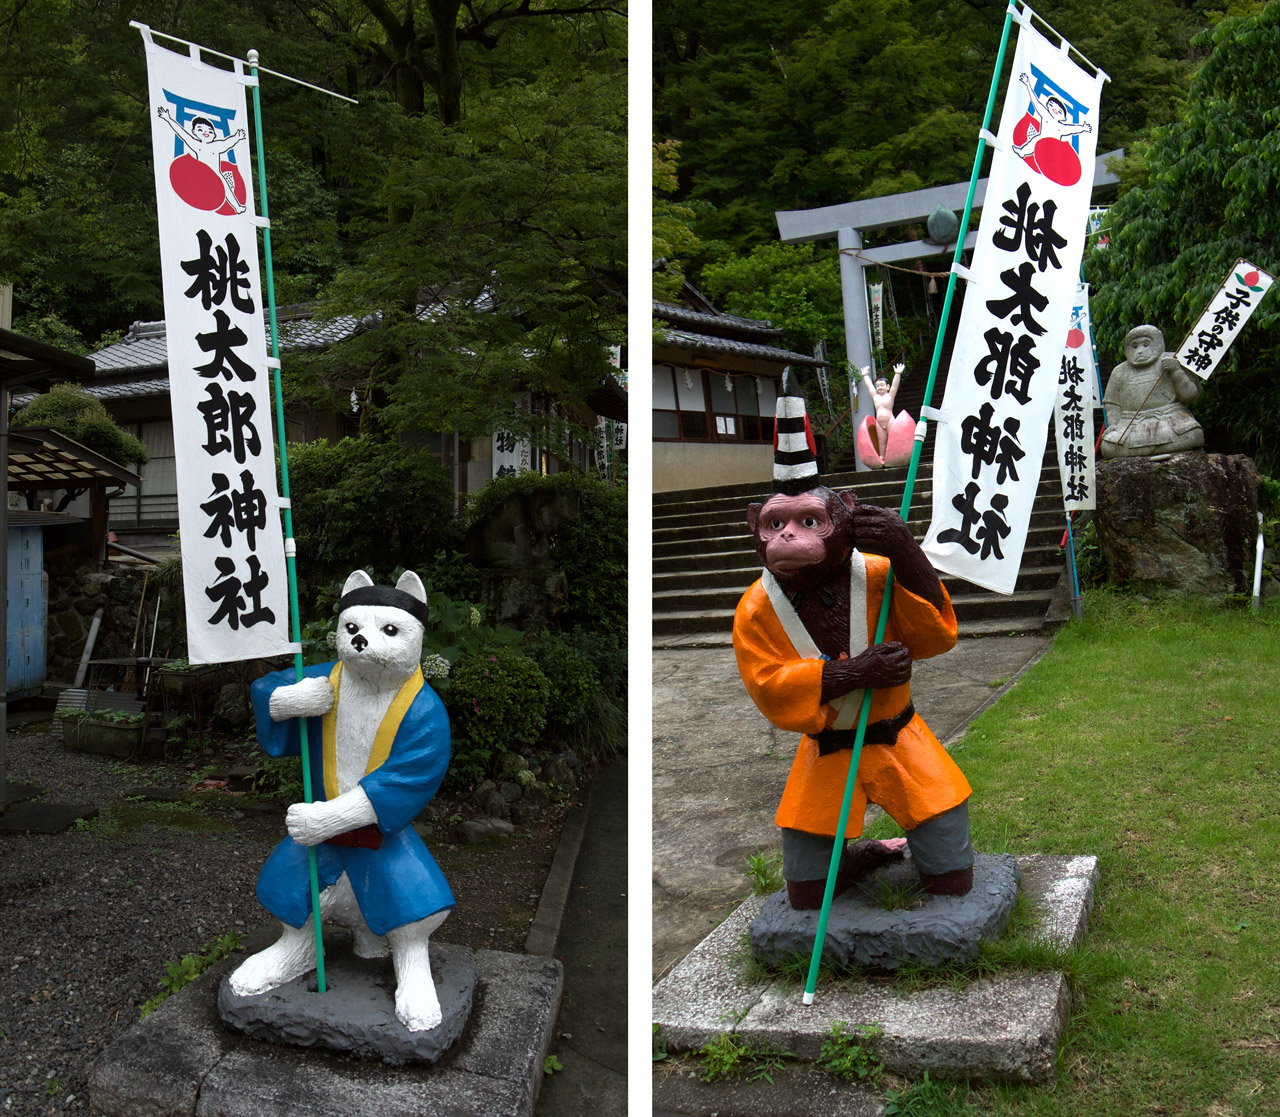 dog and monkey statues at momotaro shrine